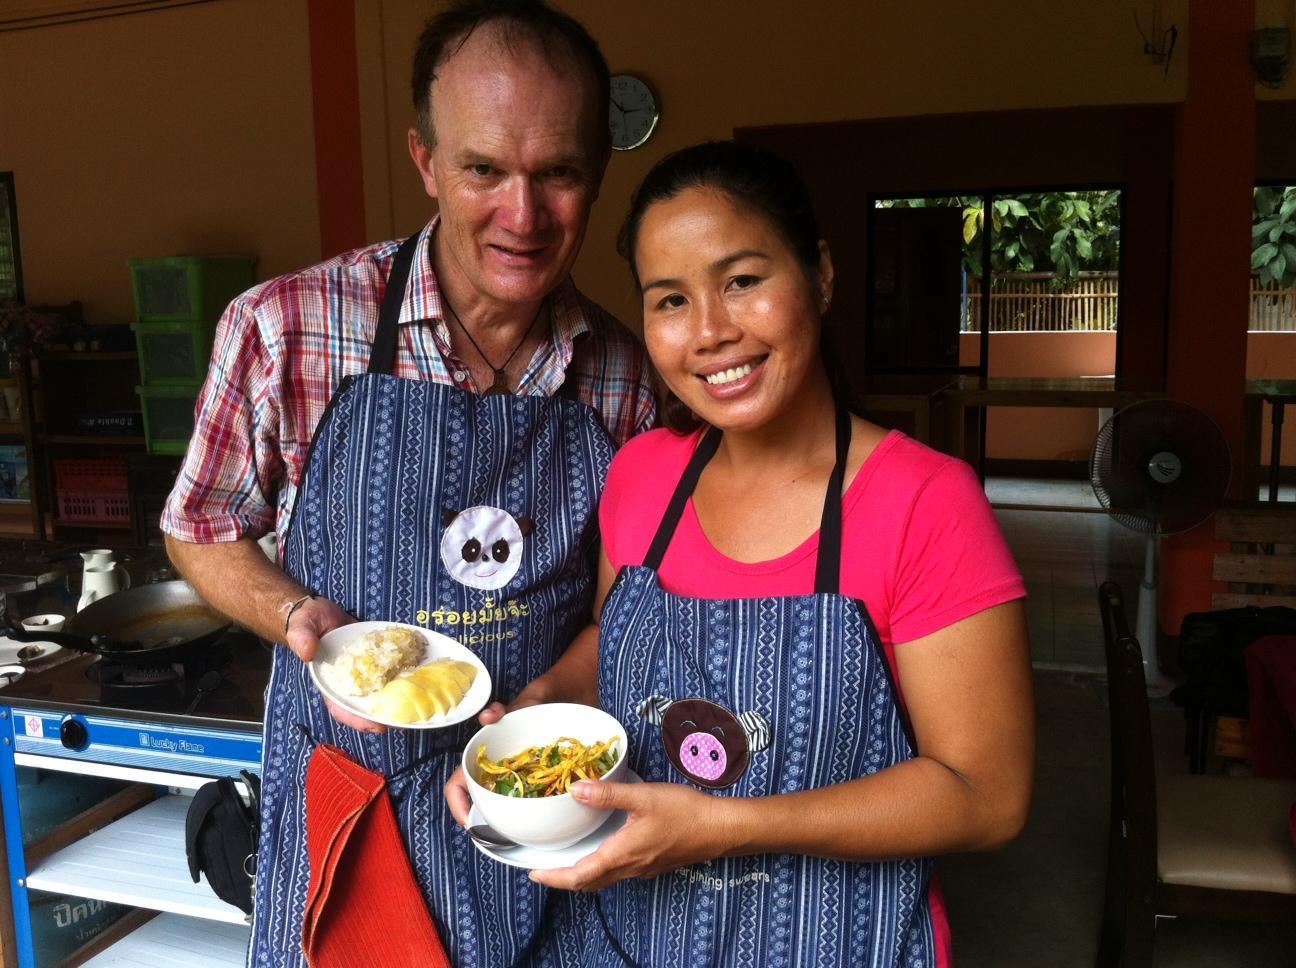 Brian K. Smith and Methanee Konpet at Smart Cook Thai Cookery School